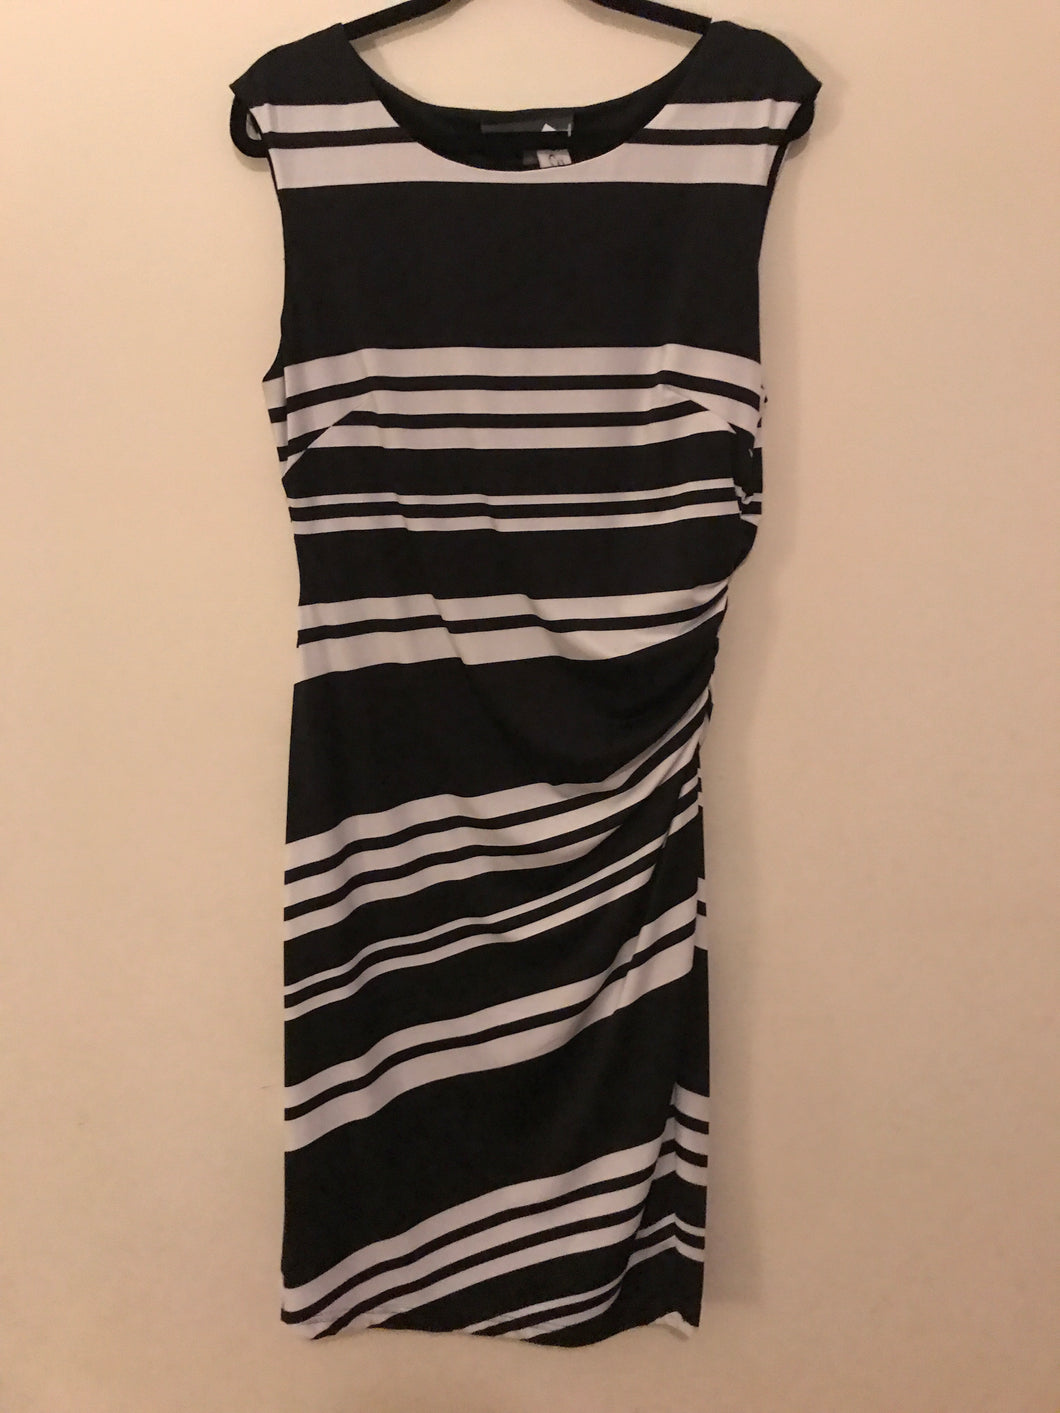 Hartford Grove black/white stripe dress Size 10